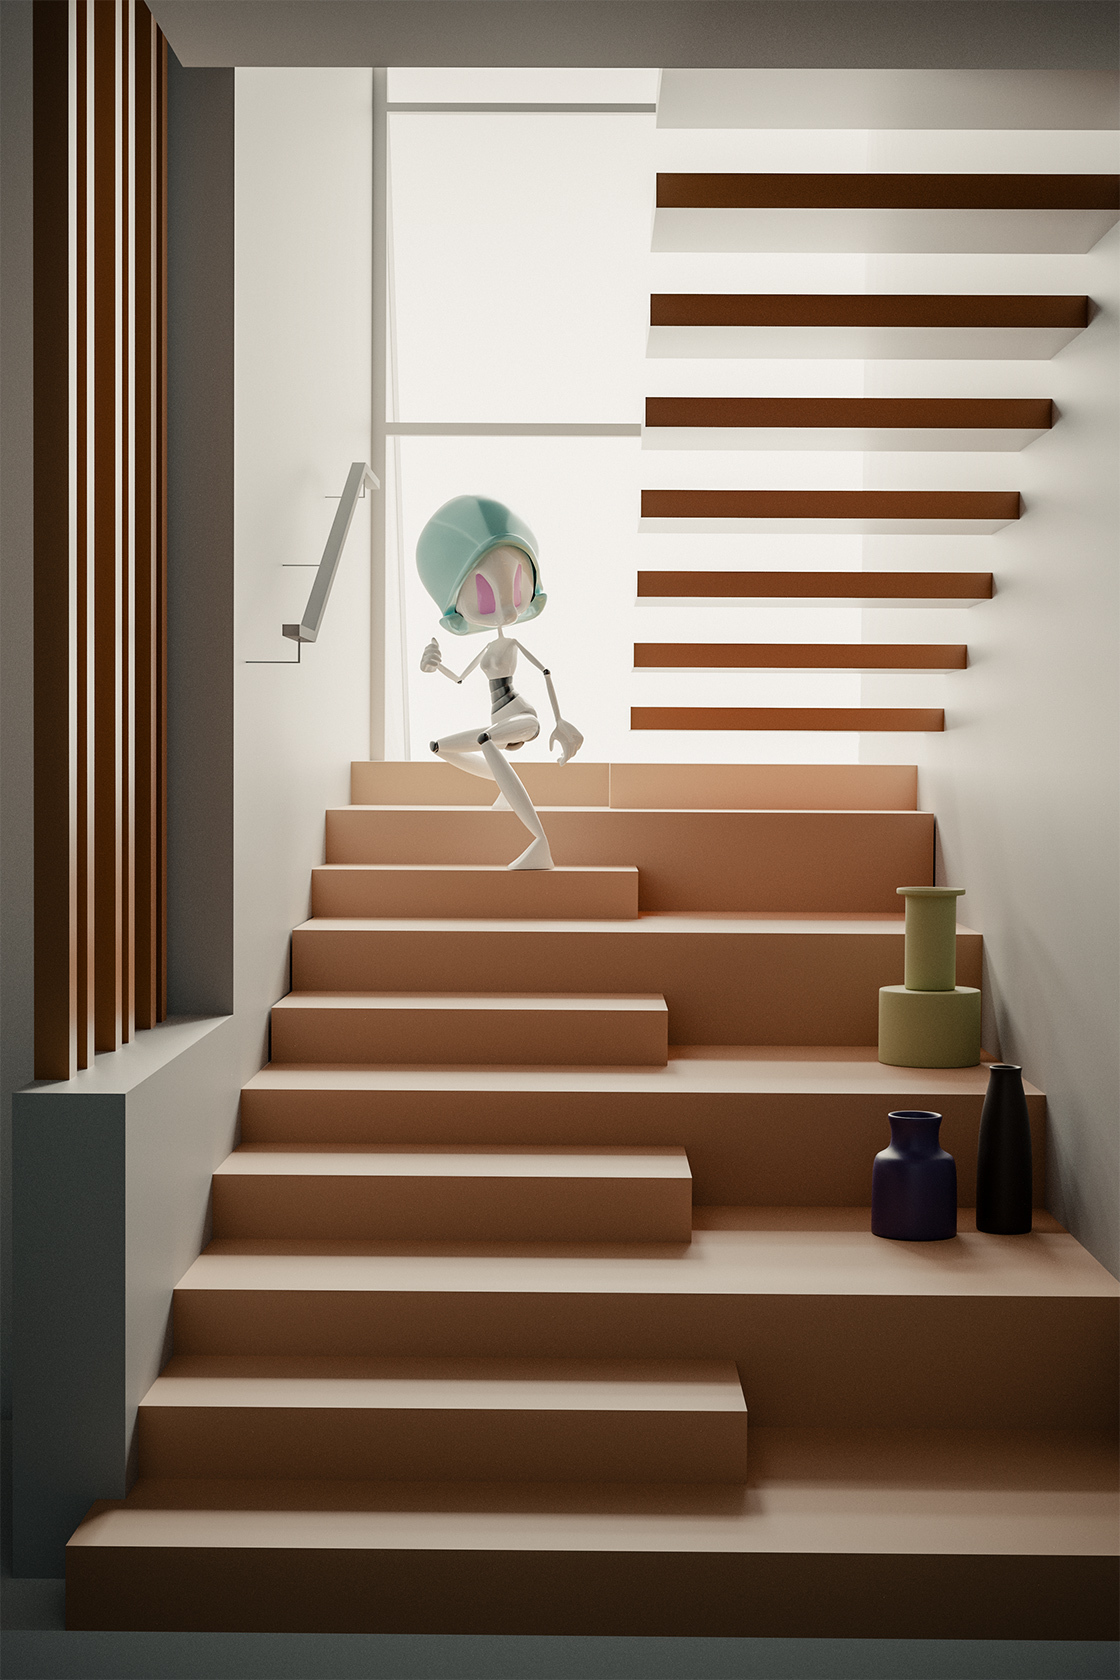 Heroina on the stairs